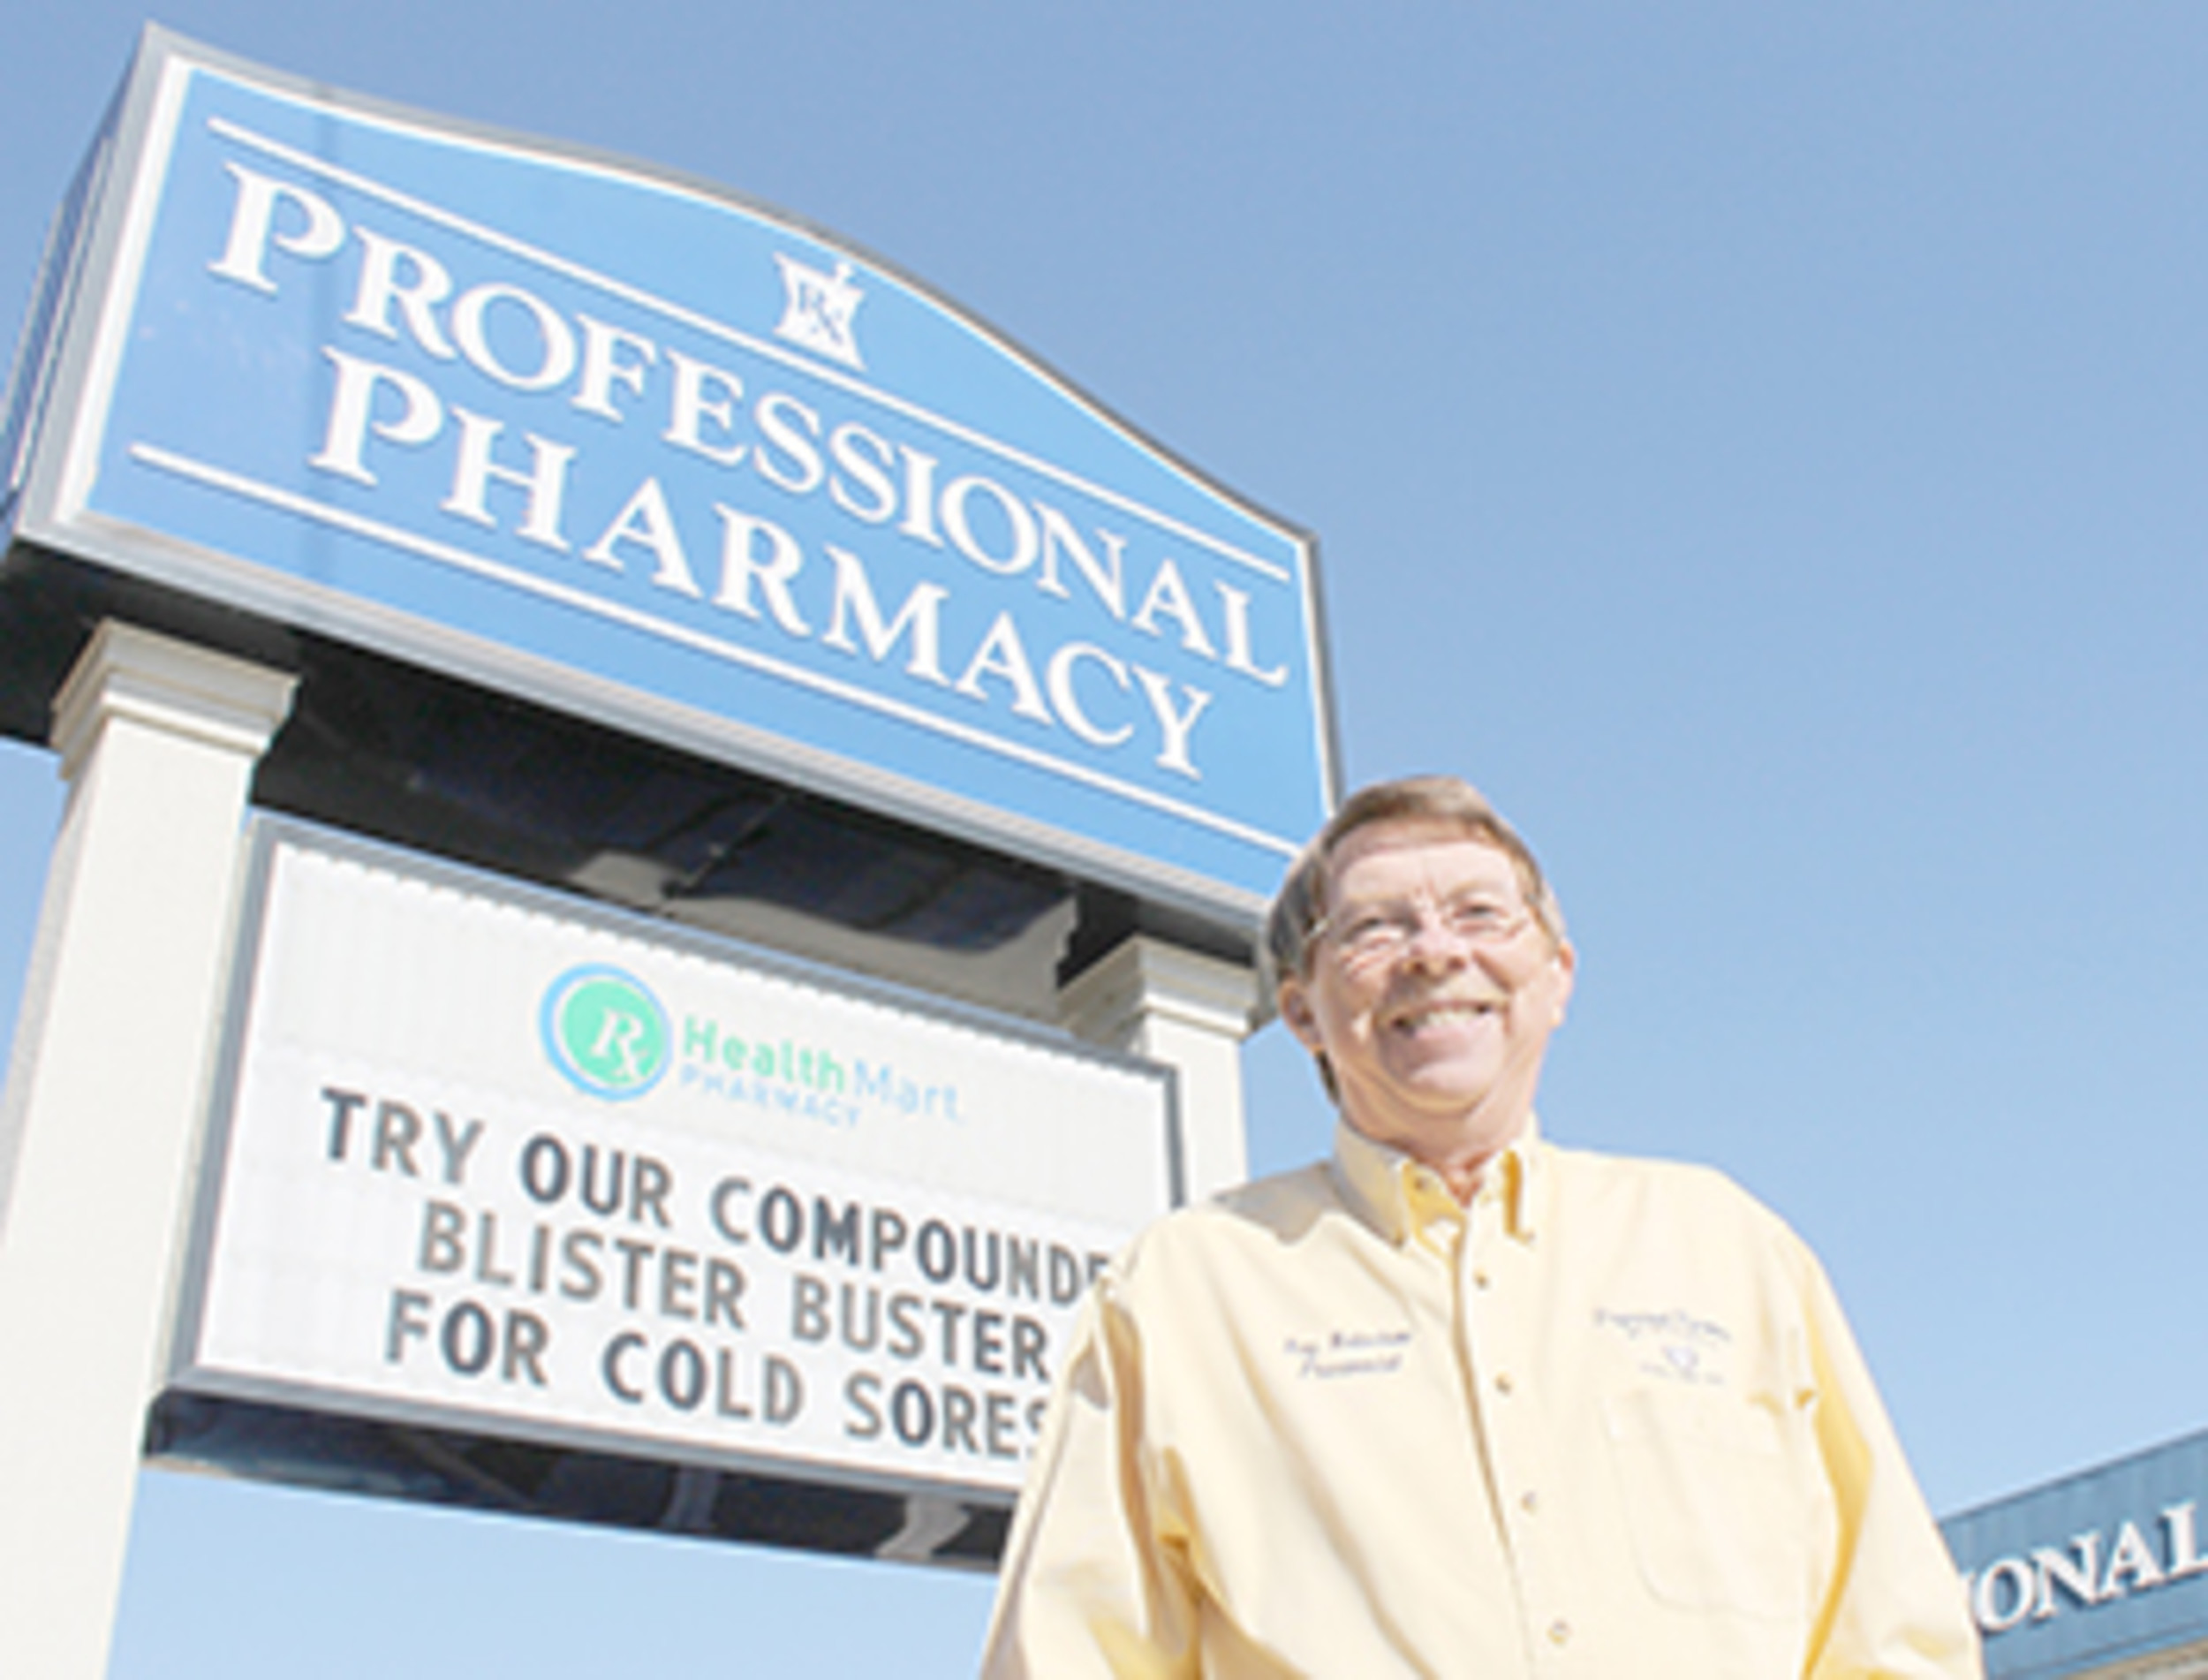 Ray Robertson has been the owner of Professional Pharmacy since 1981. He retired Jan. 1, although he continues to work at the pharmacy on a part-time basis. Daily Mountain Eagle - Jennifer Cohron